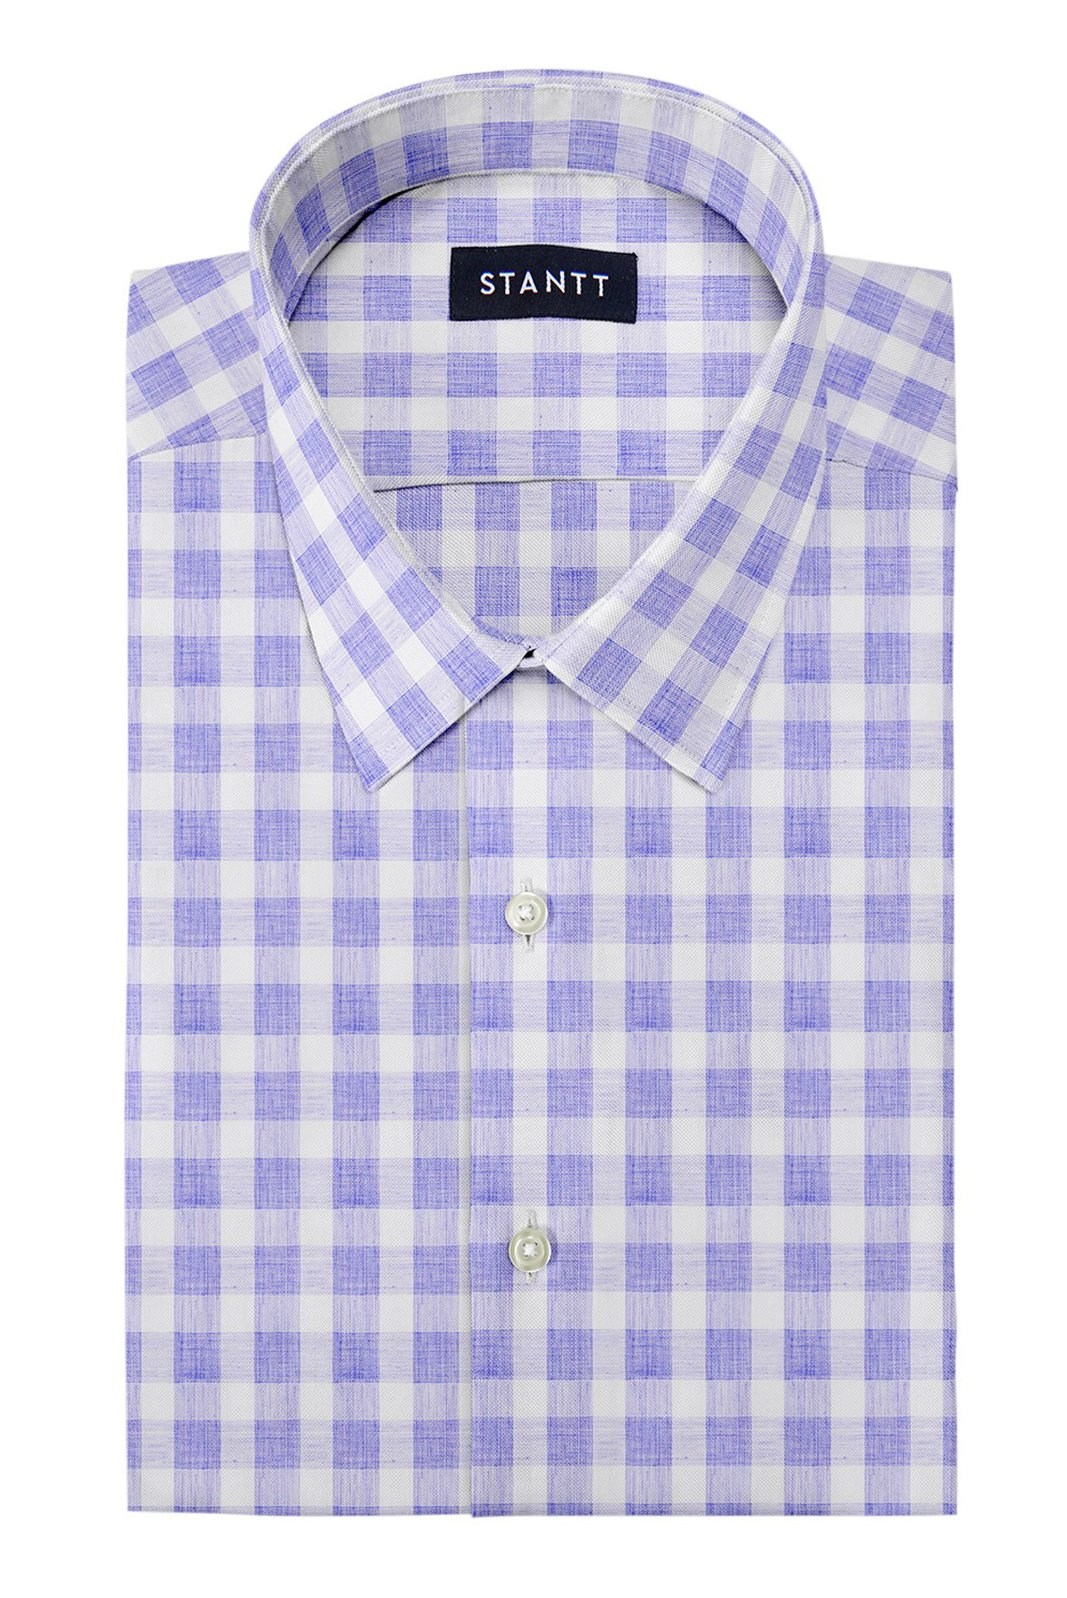 Heather Blue Buffalo Check: Semi-Spread Collar, Barrel Cuff